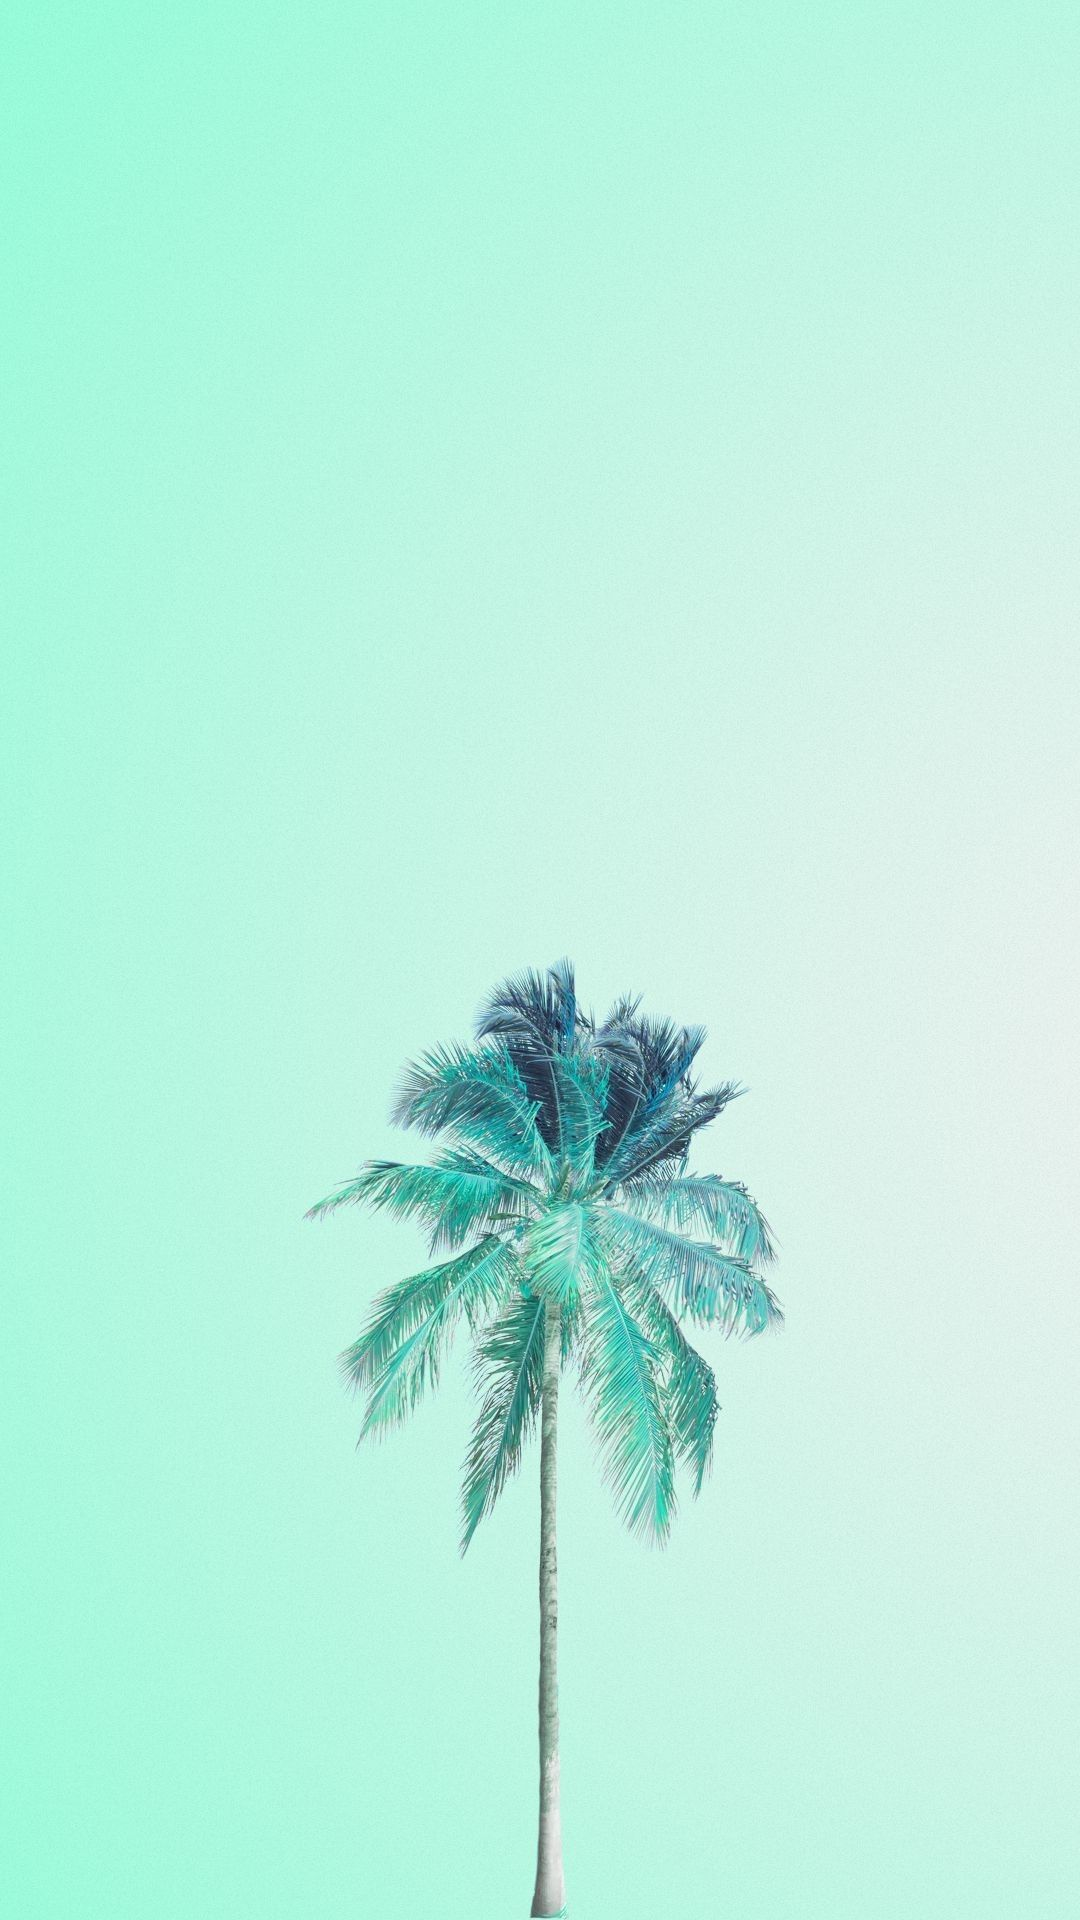 Mint Green Aesthetic HD Wallpapers (Desktop Background / Android / iPhone) (1080p, 4k) (35029) - 3D / Abstract